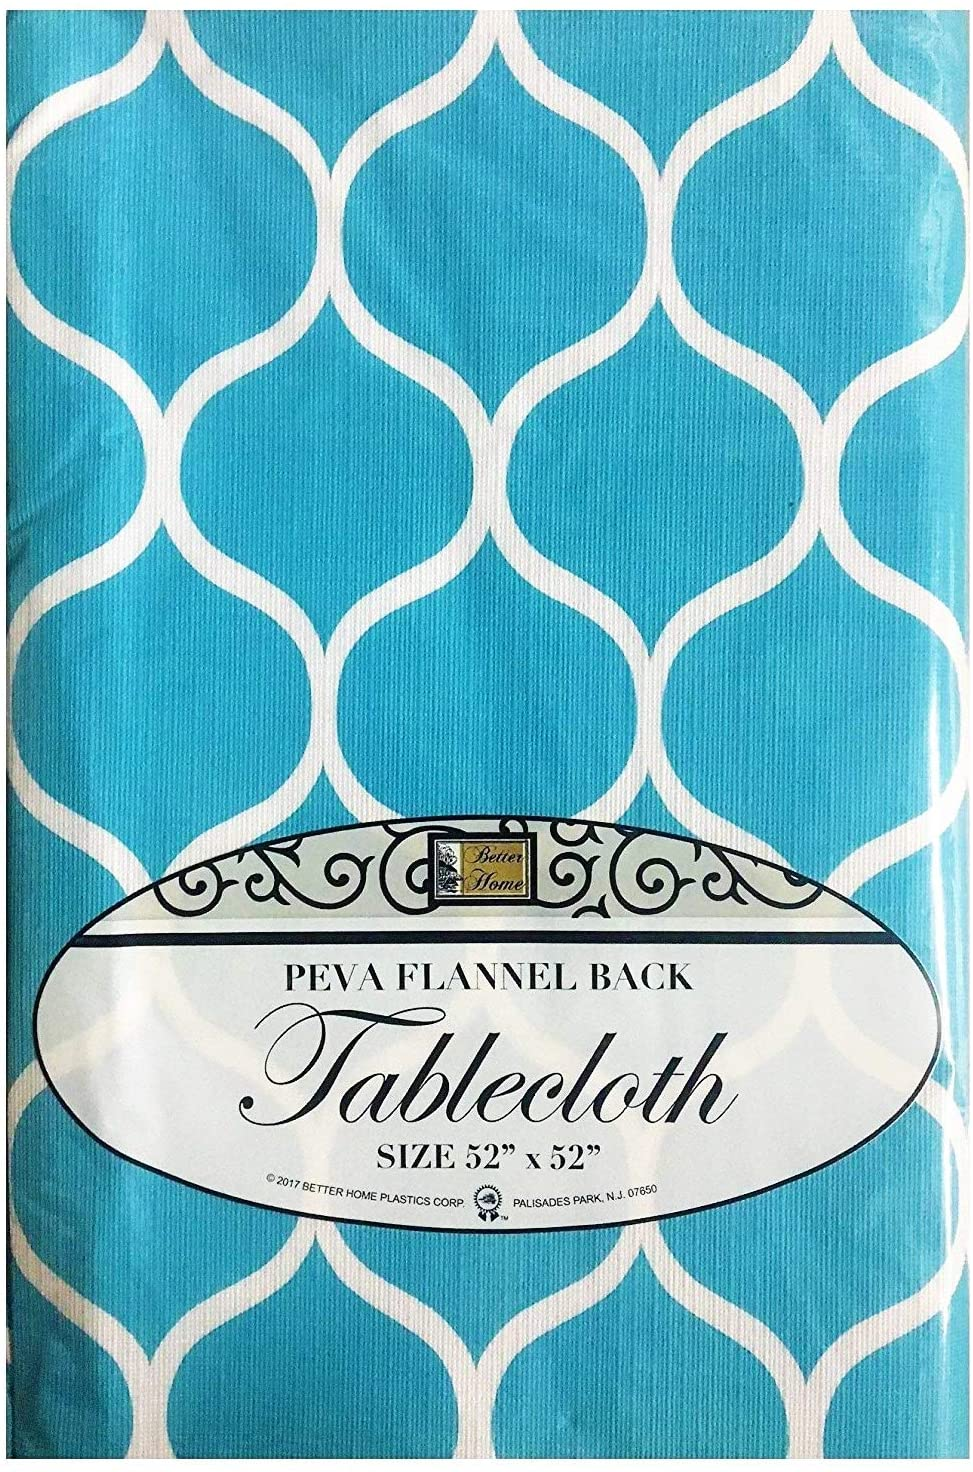 Better Home Blue Ogee Design Tablecloth PEVA Flannel Backed Kitchen Decorator (52